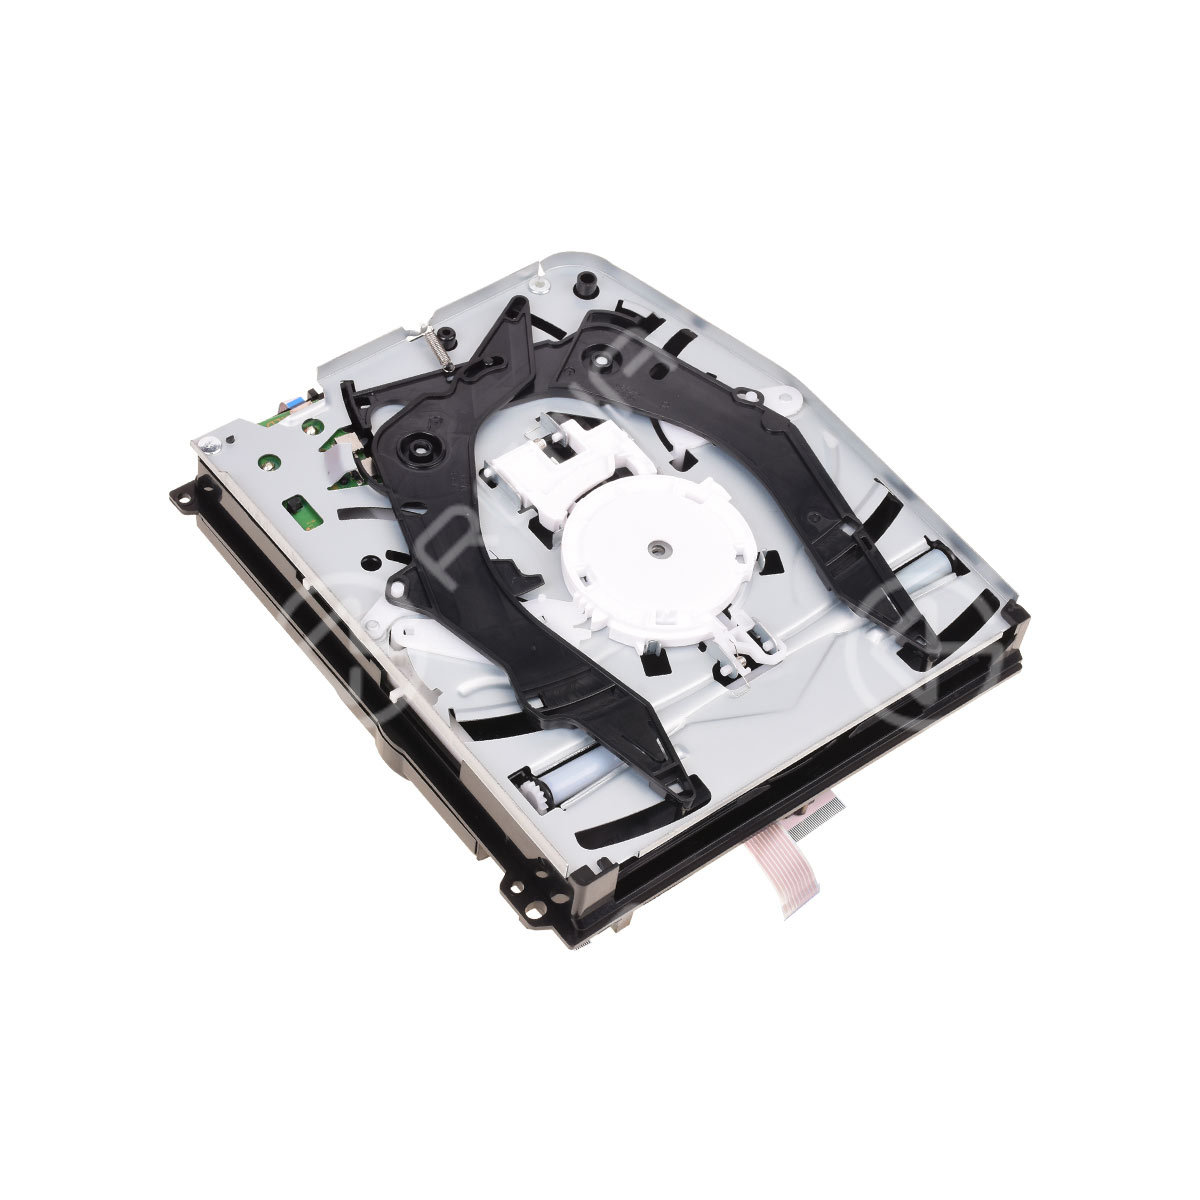 Blu-ray Drive Compatible For PS4 Pro(Cuh-7100/Cuh-7200)